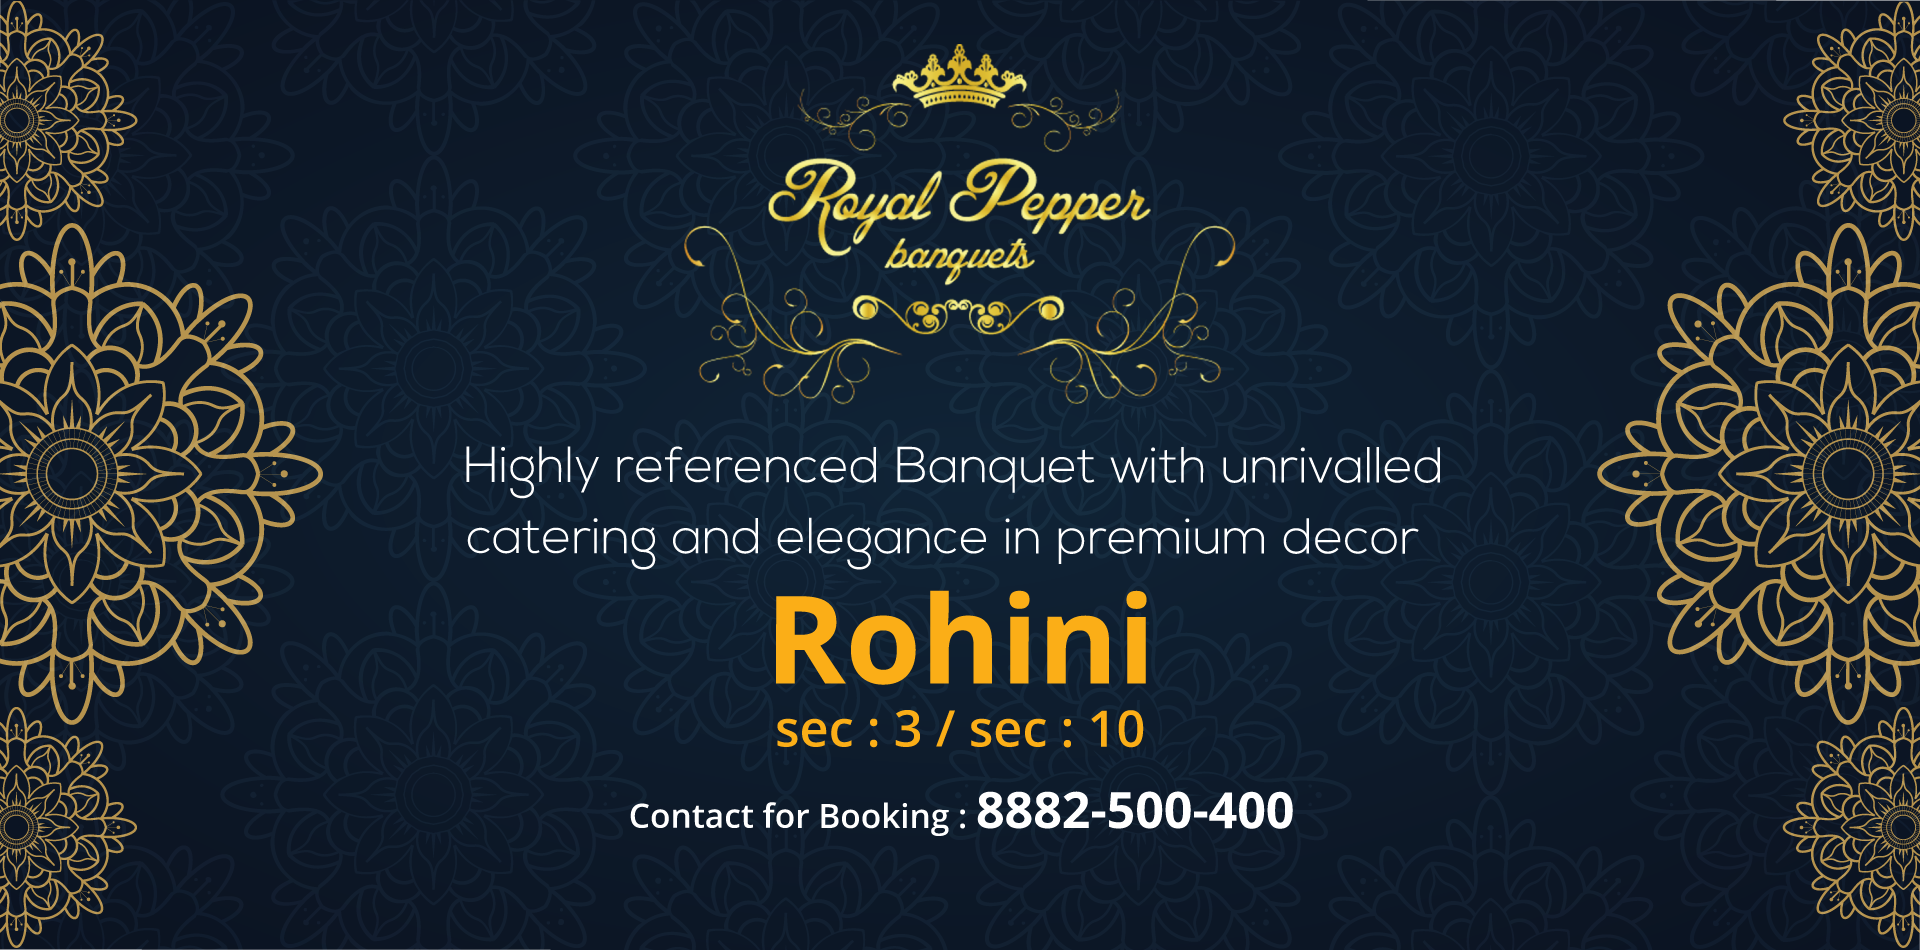 banquets in rohini, Banquet Hall in rohini, By Royal Pepper Banquets